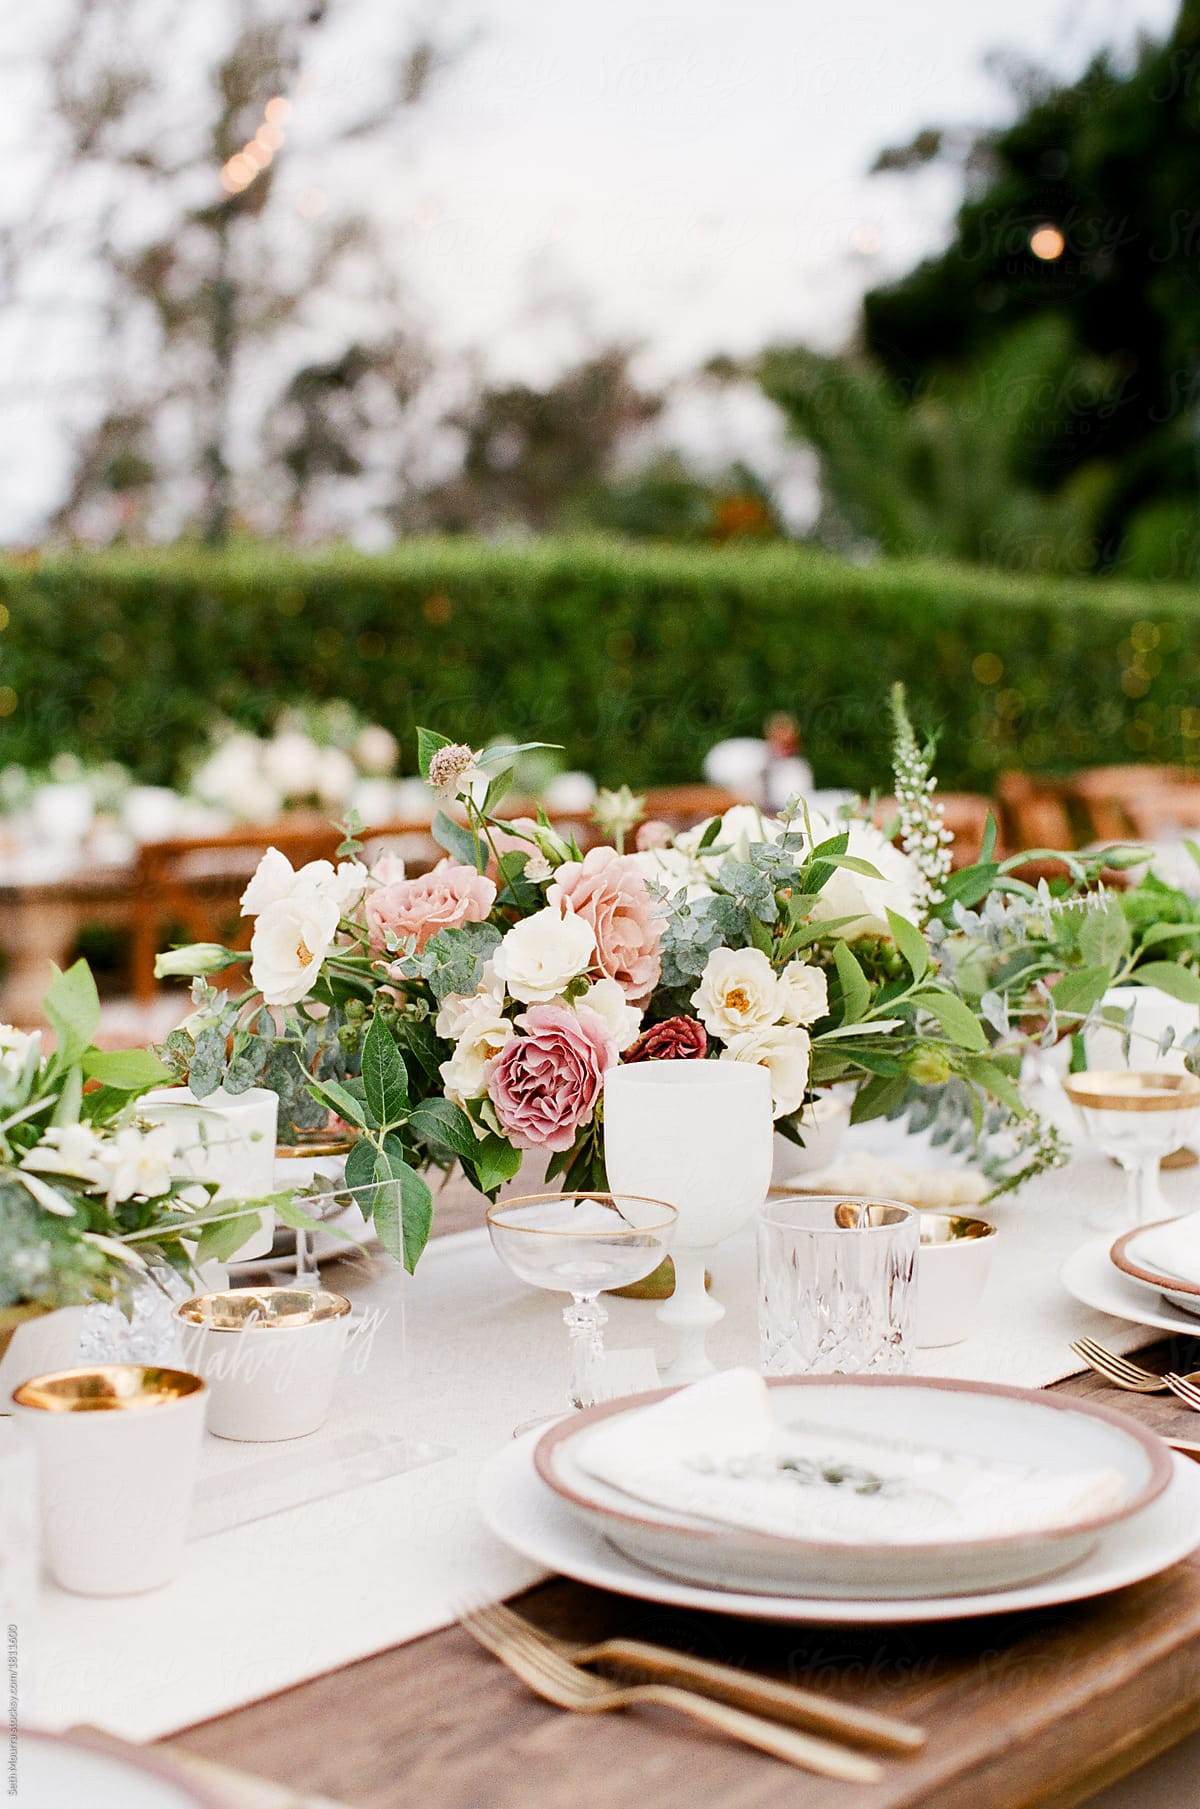 Romantic Garden Wedding Reception table by Seth Mourra - Wedding flowers, Wedding  reception - Stocksy United